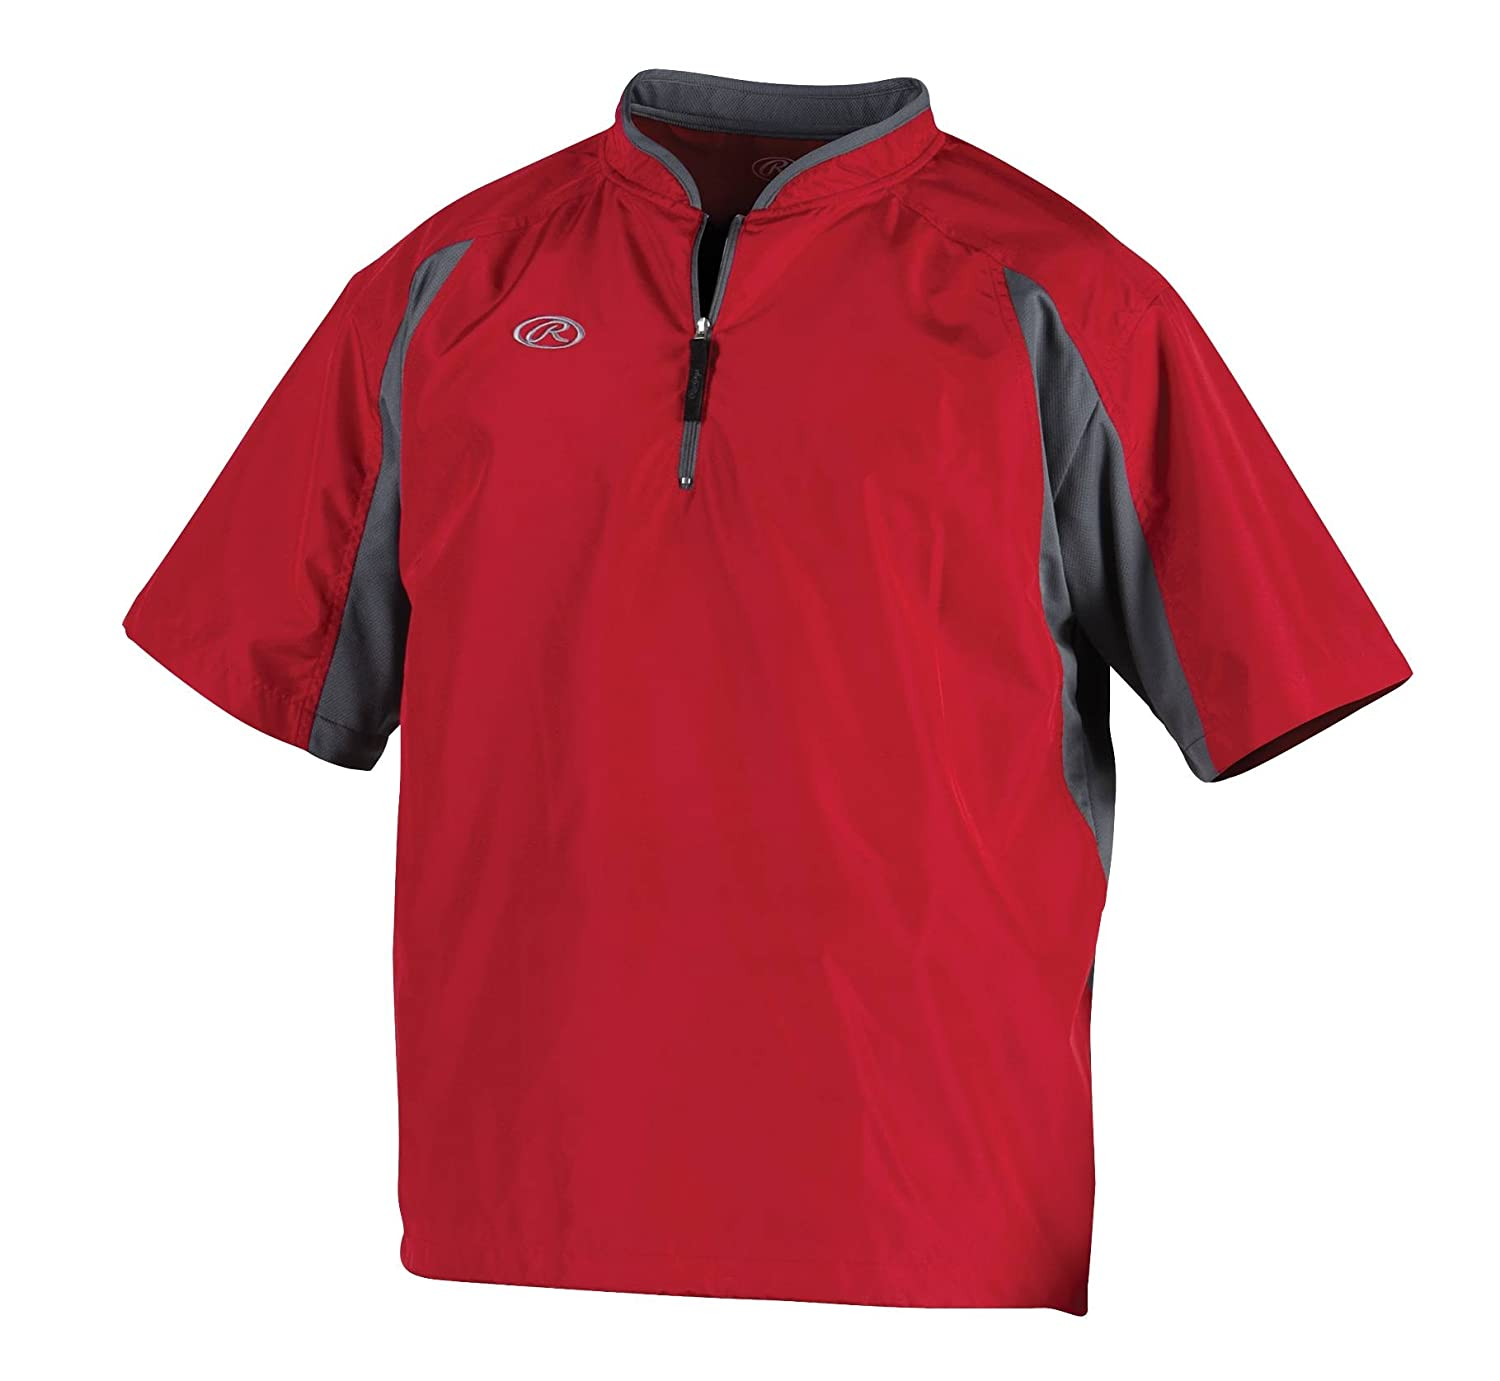 Baseball short sleeve jacket jackets review for Cheap coaches polo shirts